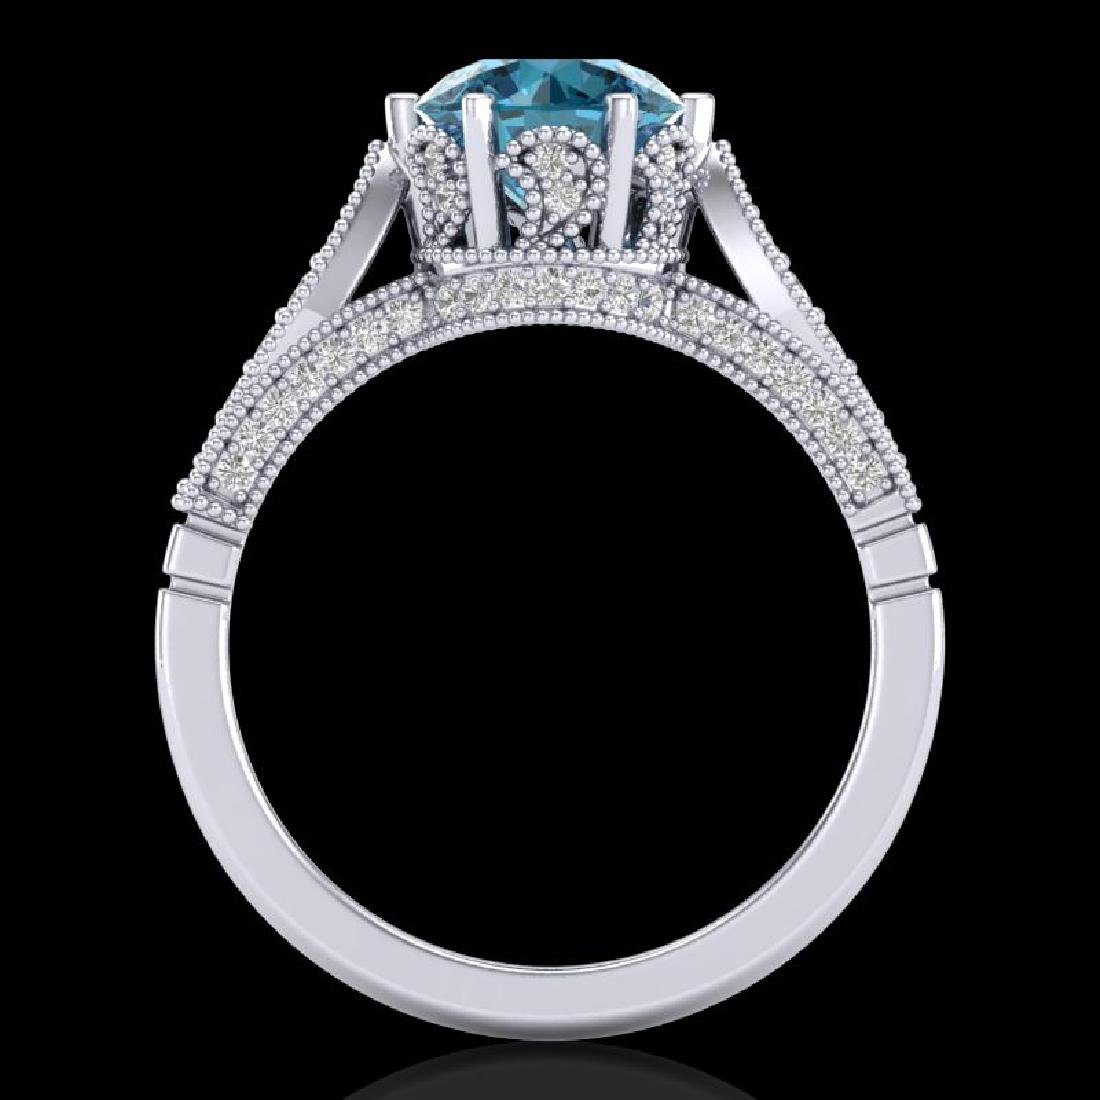 2.2 CTW Intense Blue Diamond Solitaire Engagement Art - 3